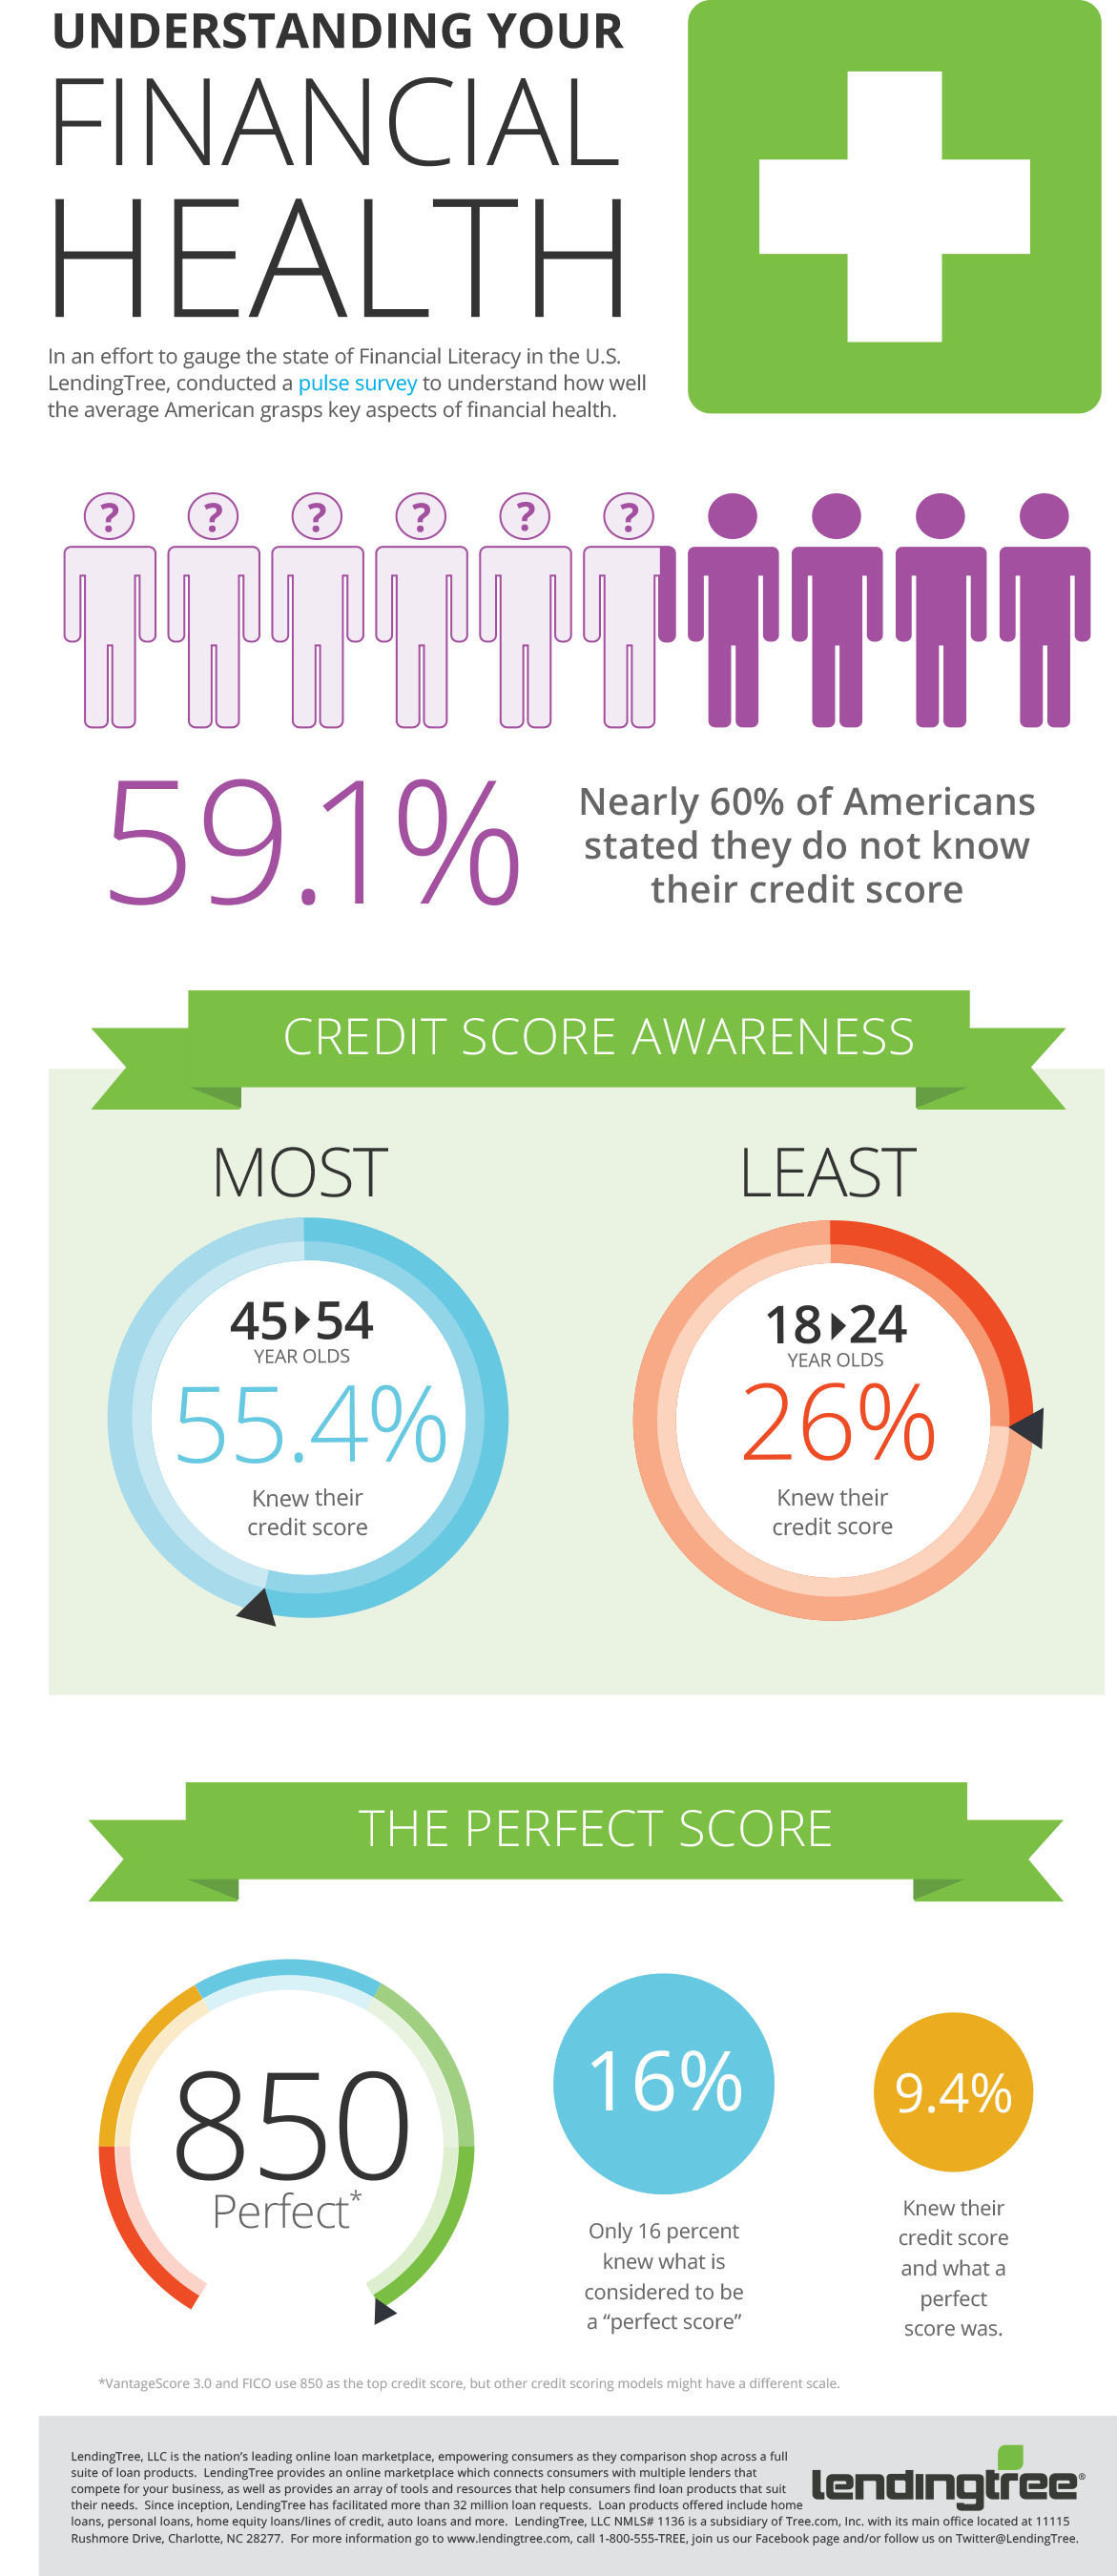 LendingTree Survey Finds Nearly 60% of Americans Don't Know Their Credit Scores; Most consumers lack ...